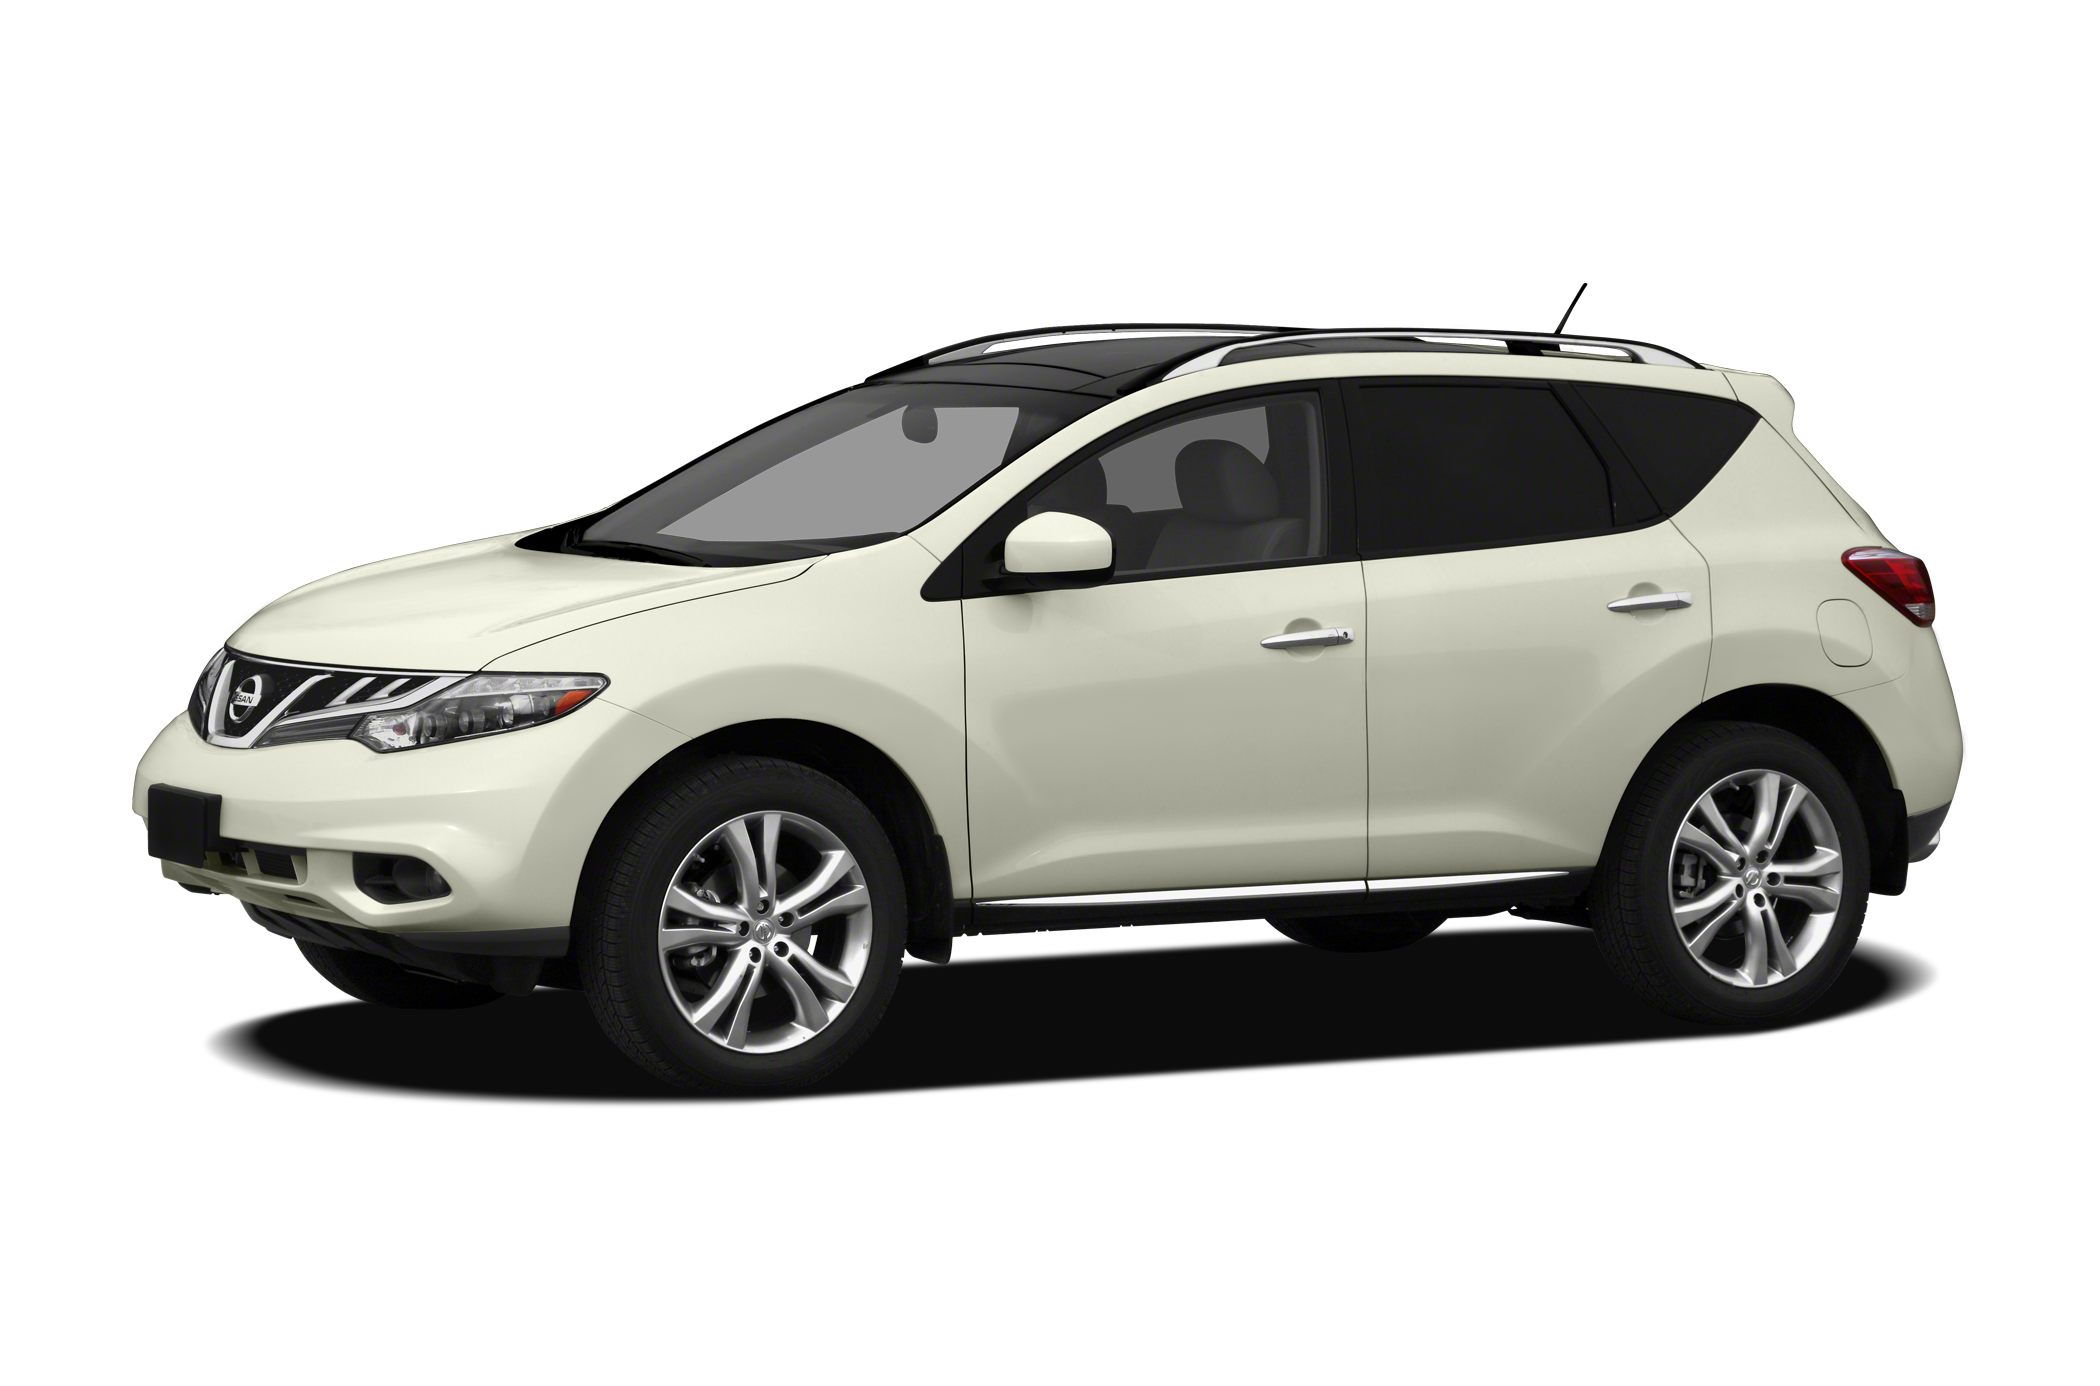 2012 Nissan Murano SL SUV for sale in Lancaster for $21,599 with 53,910 miles.